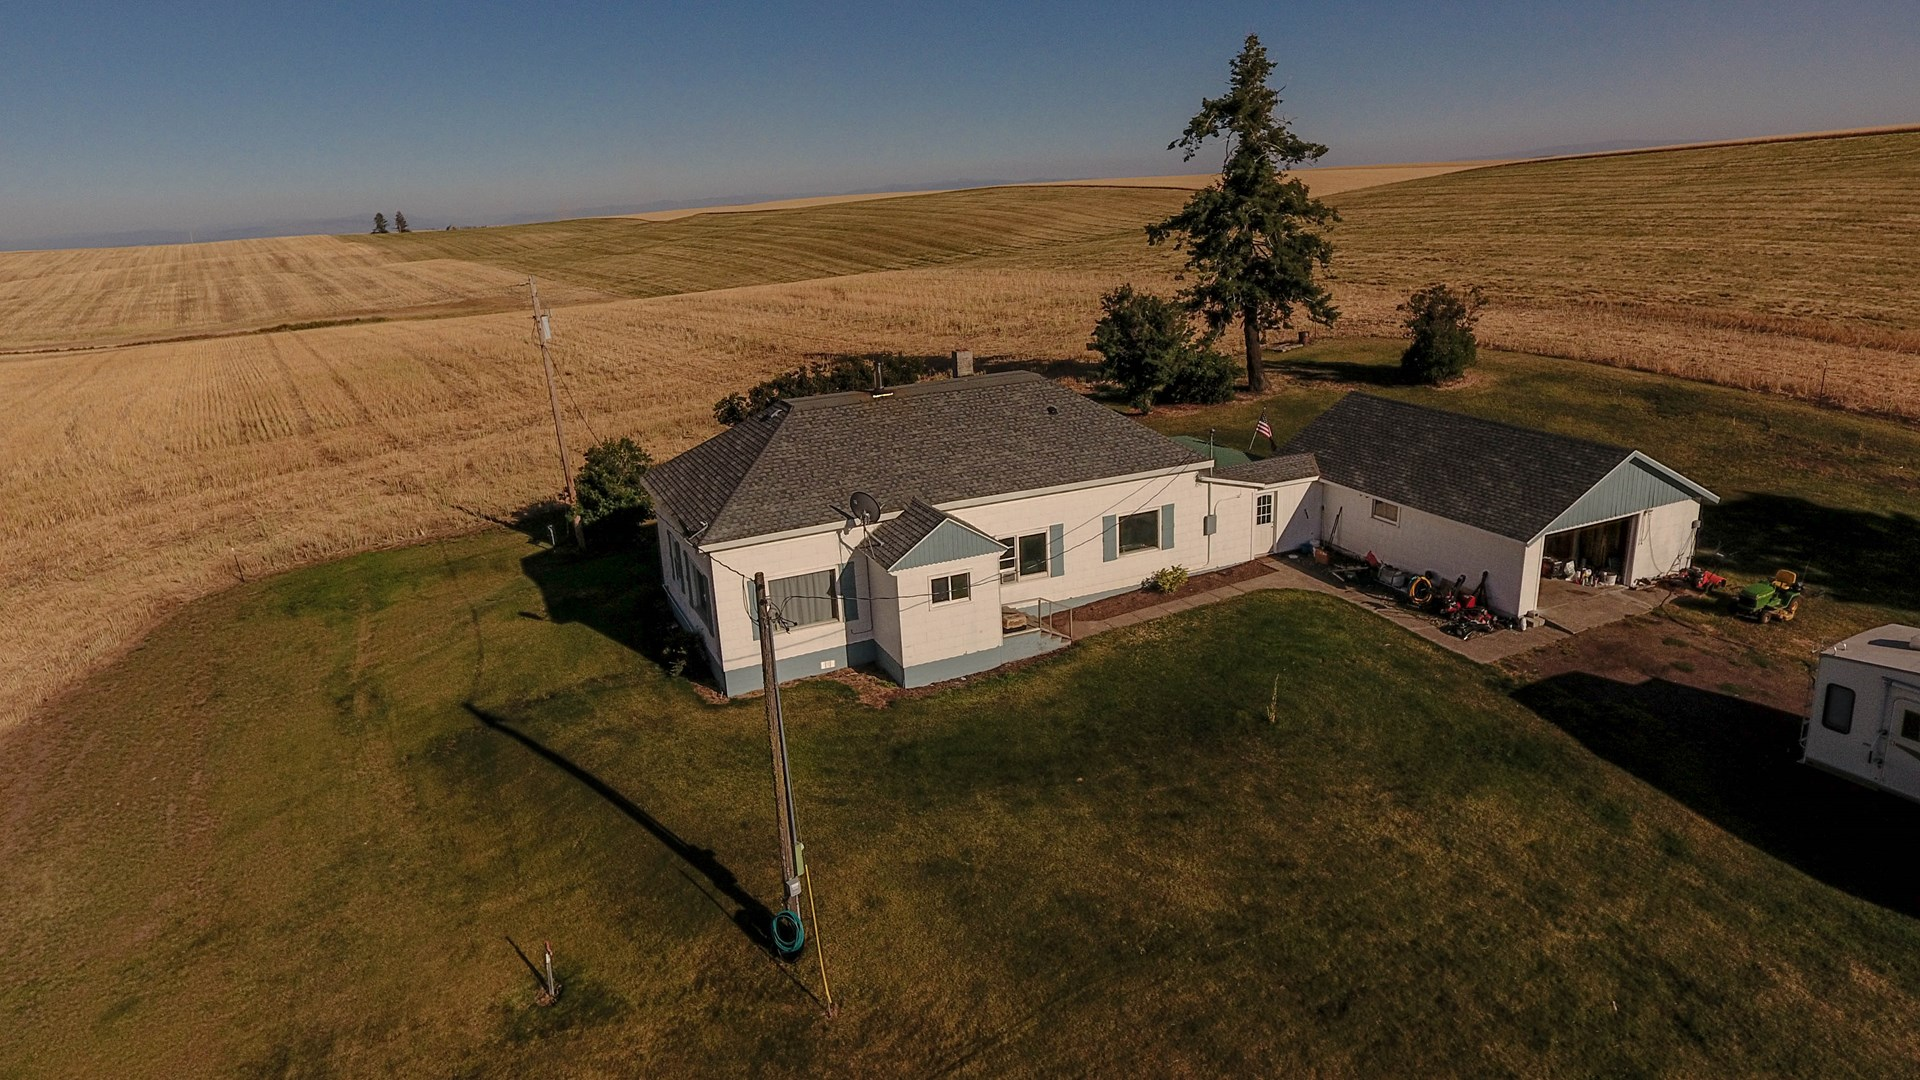 Country Home in Craigmont, ID Private 3 Acres Lewis County